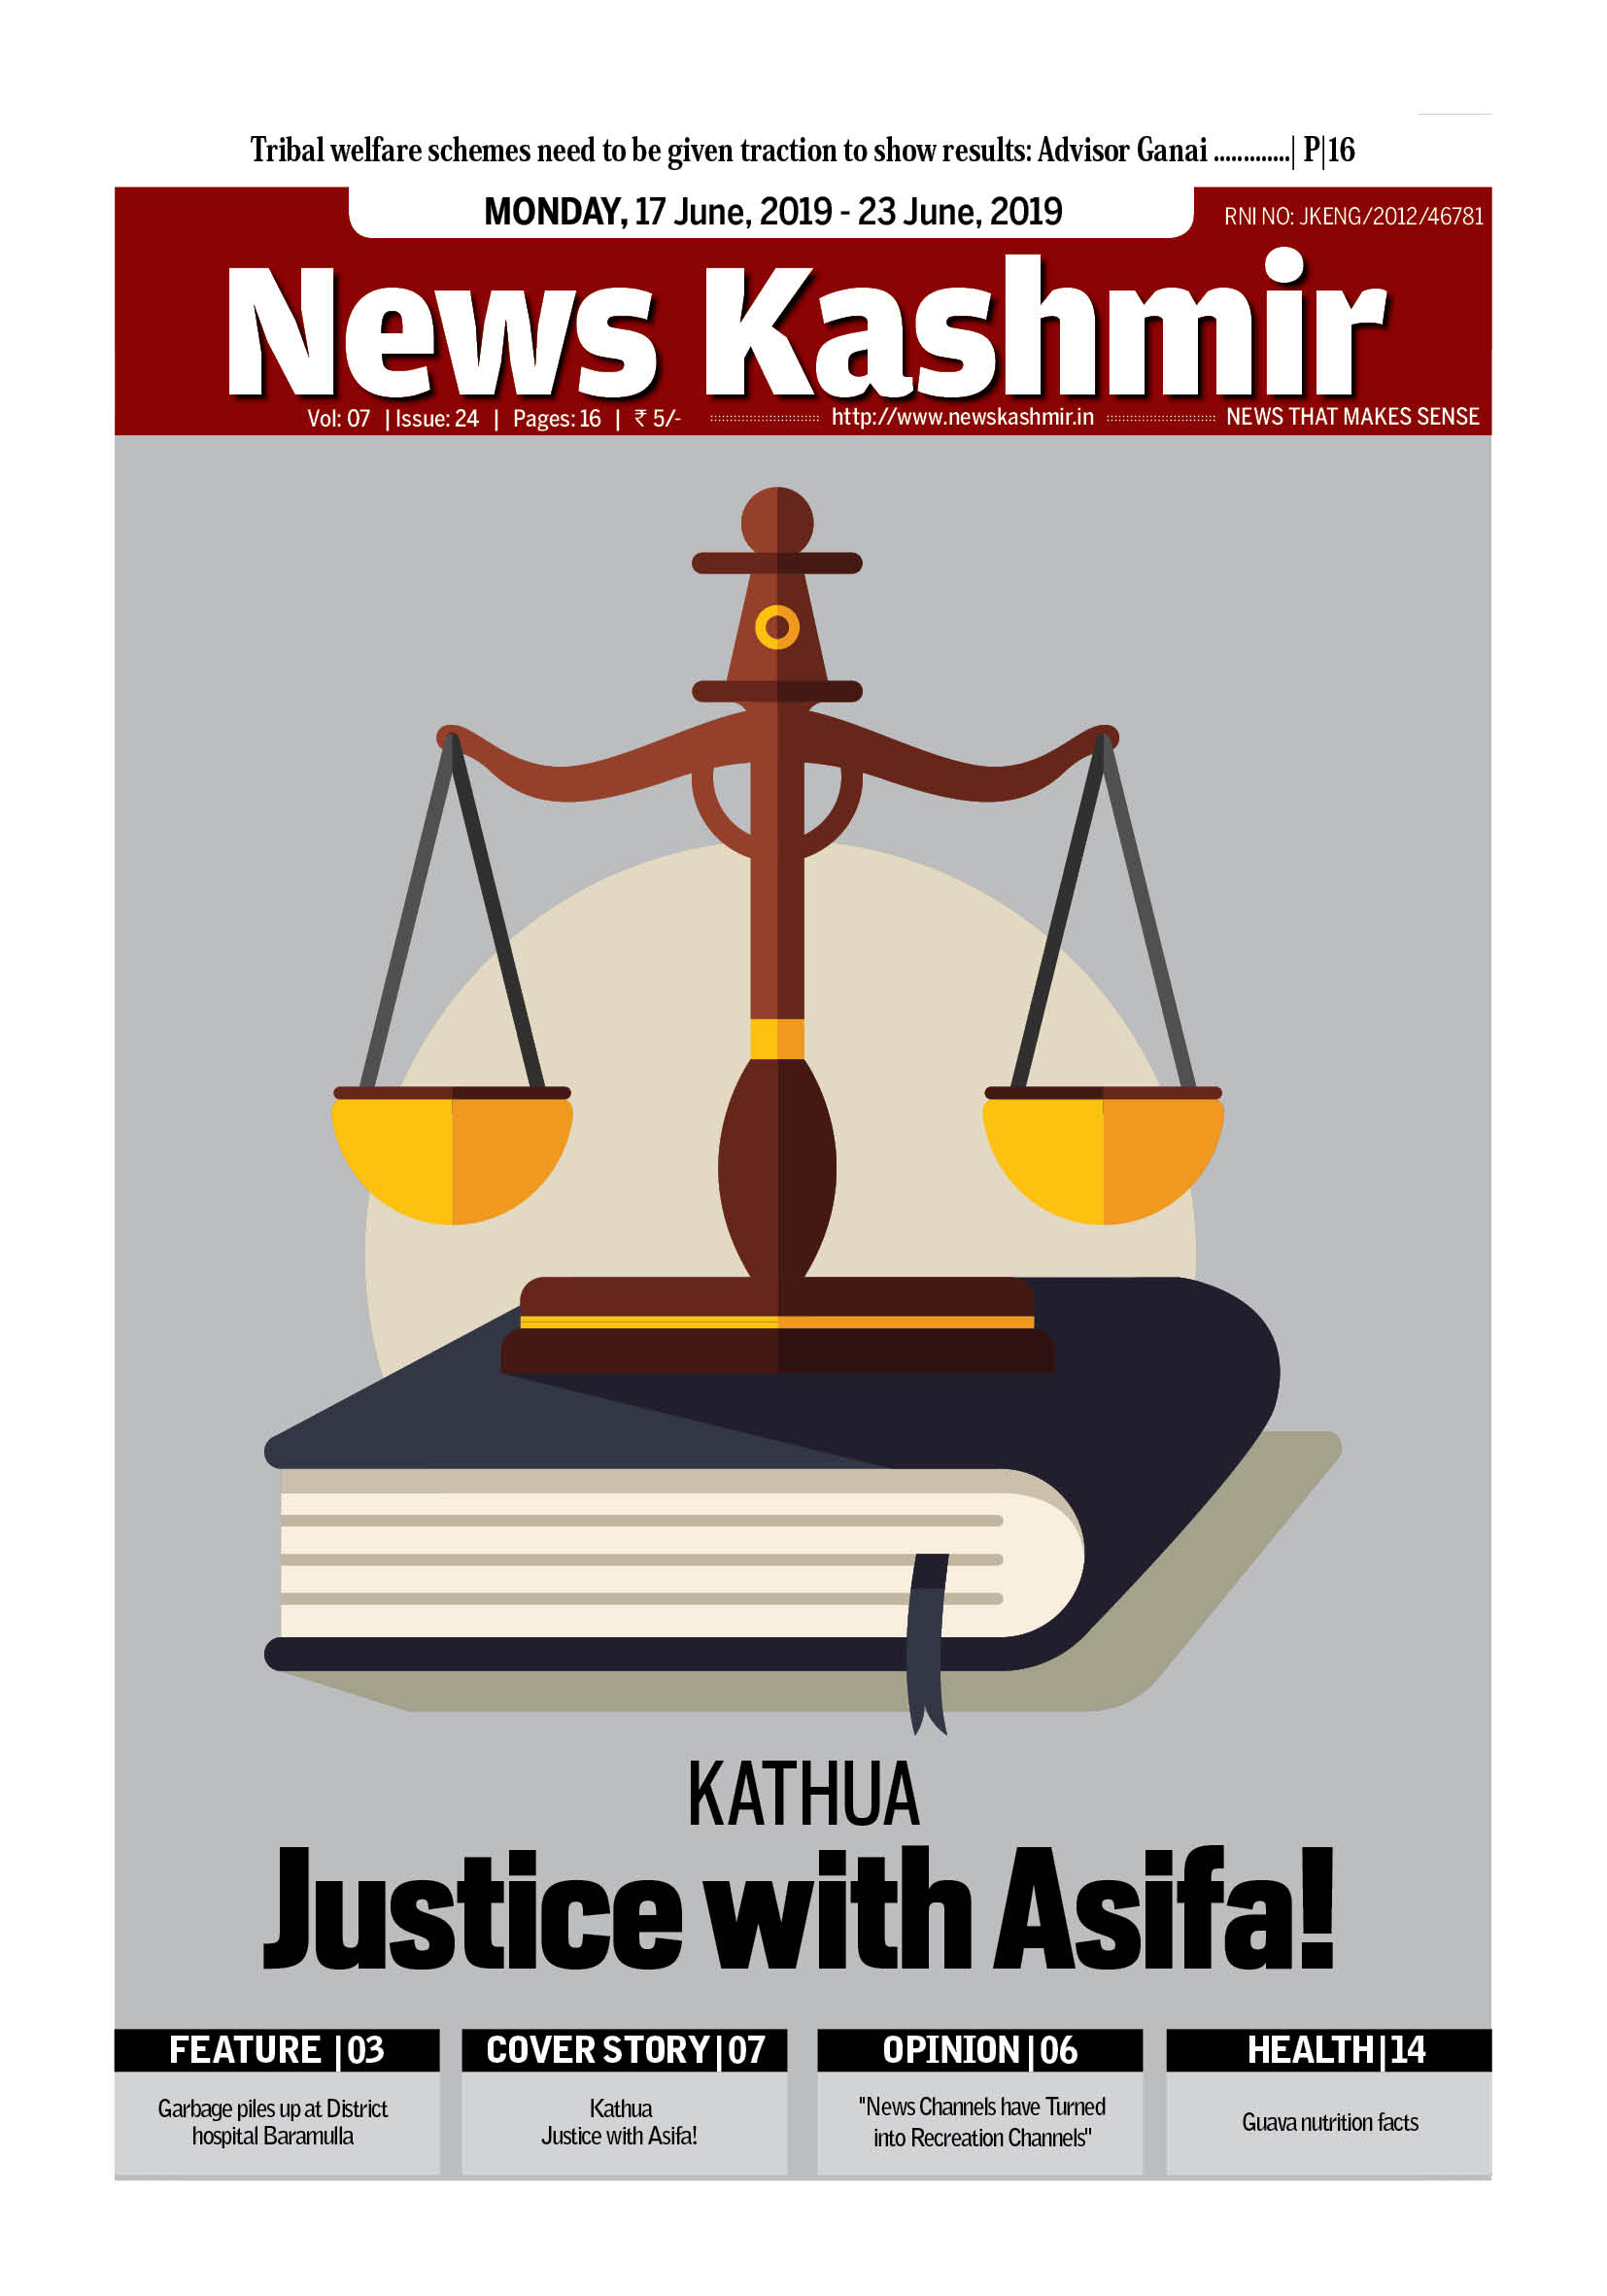 Kathua : Justice with Asifa!